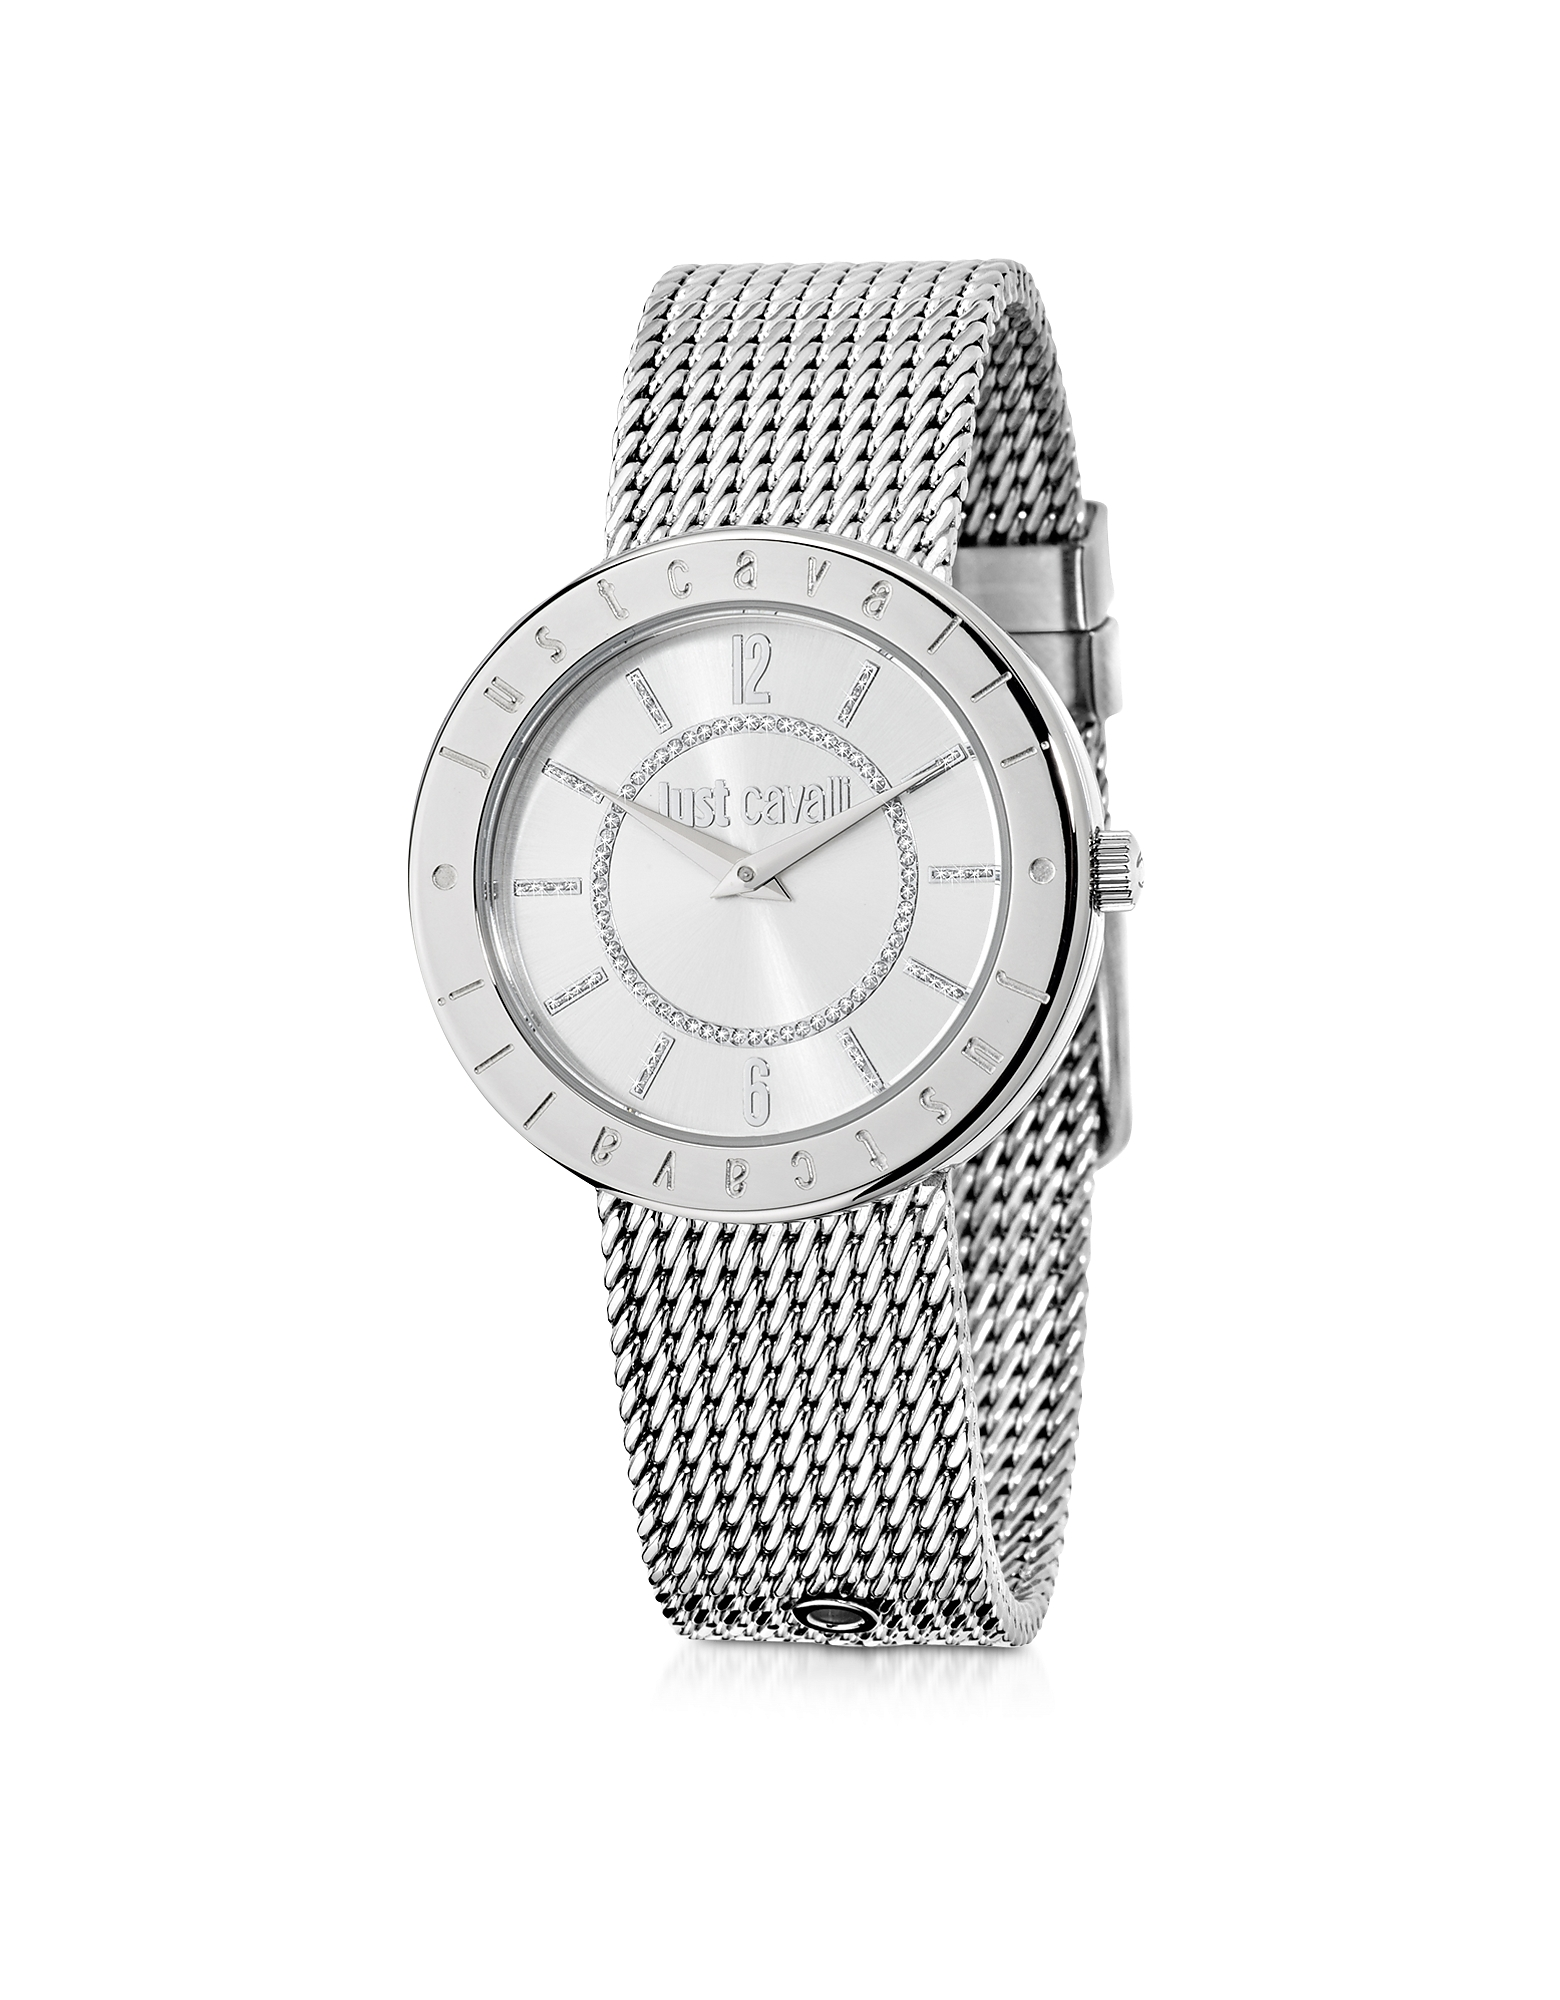 Just Cavalli Women's Watches, Just Shiny Silver Tone Stainless Steel Women's Watch